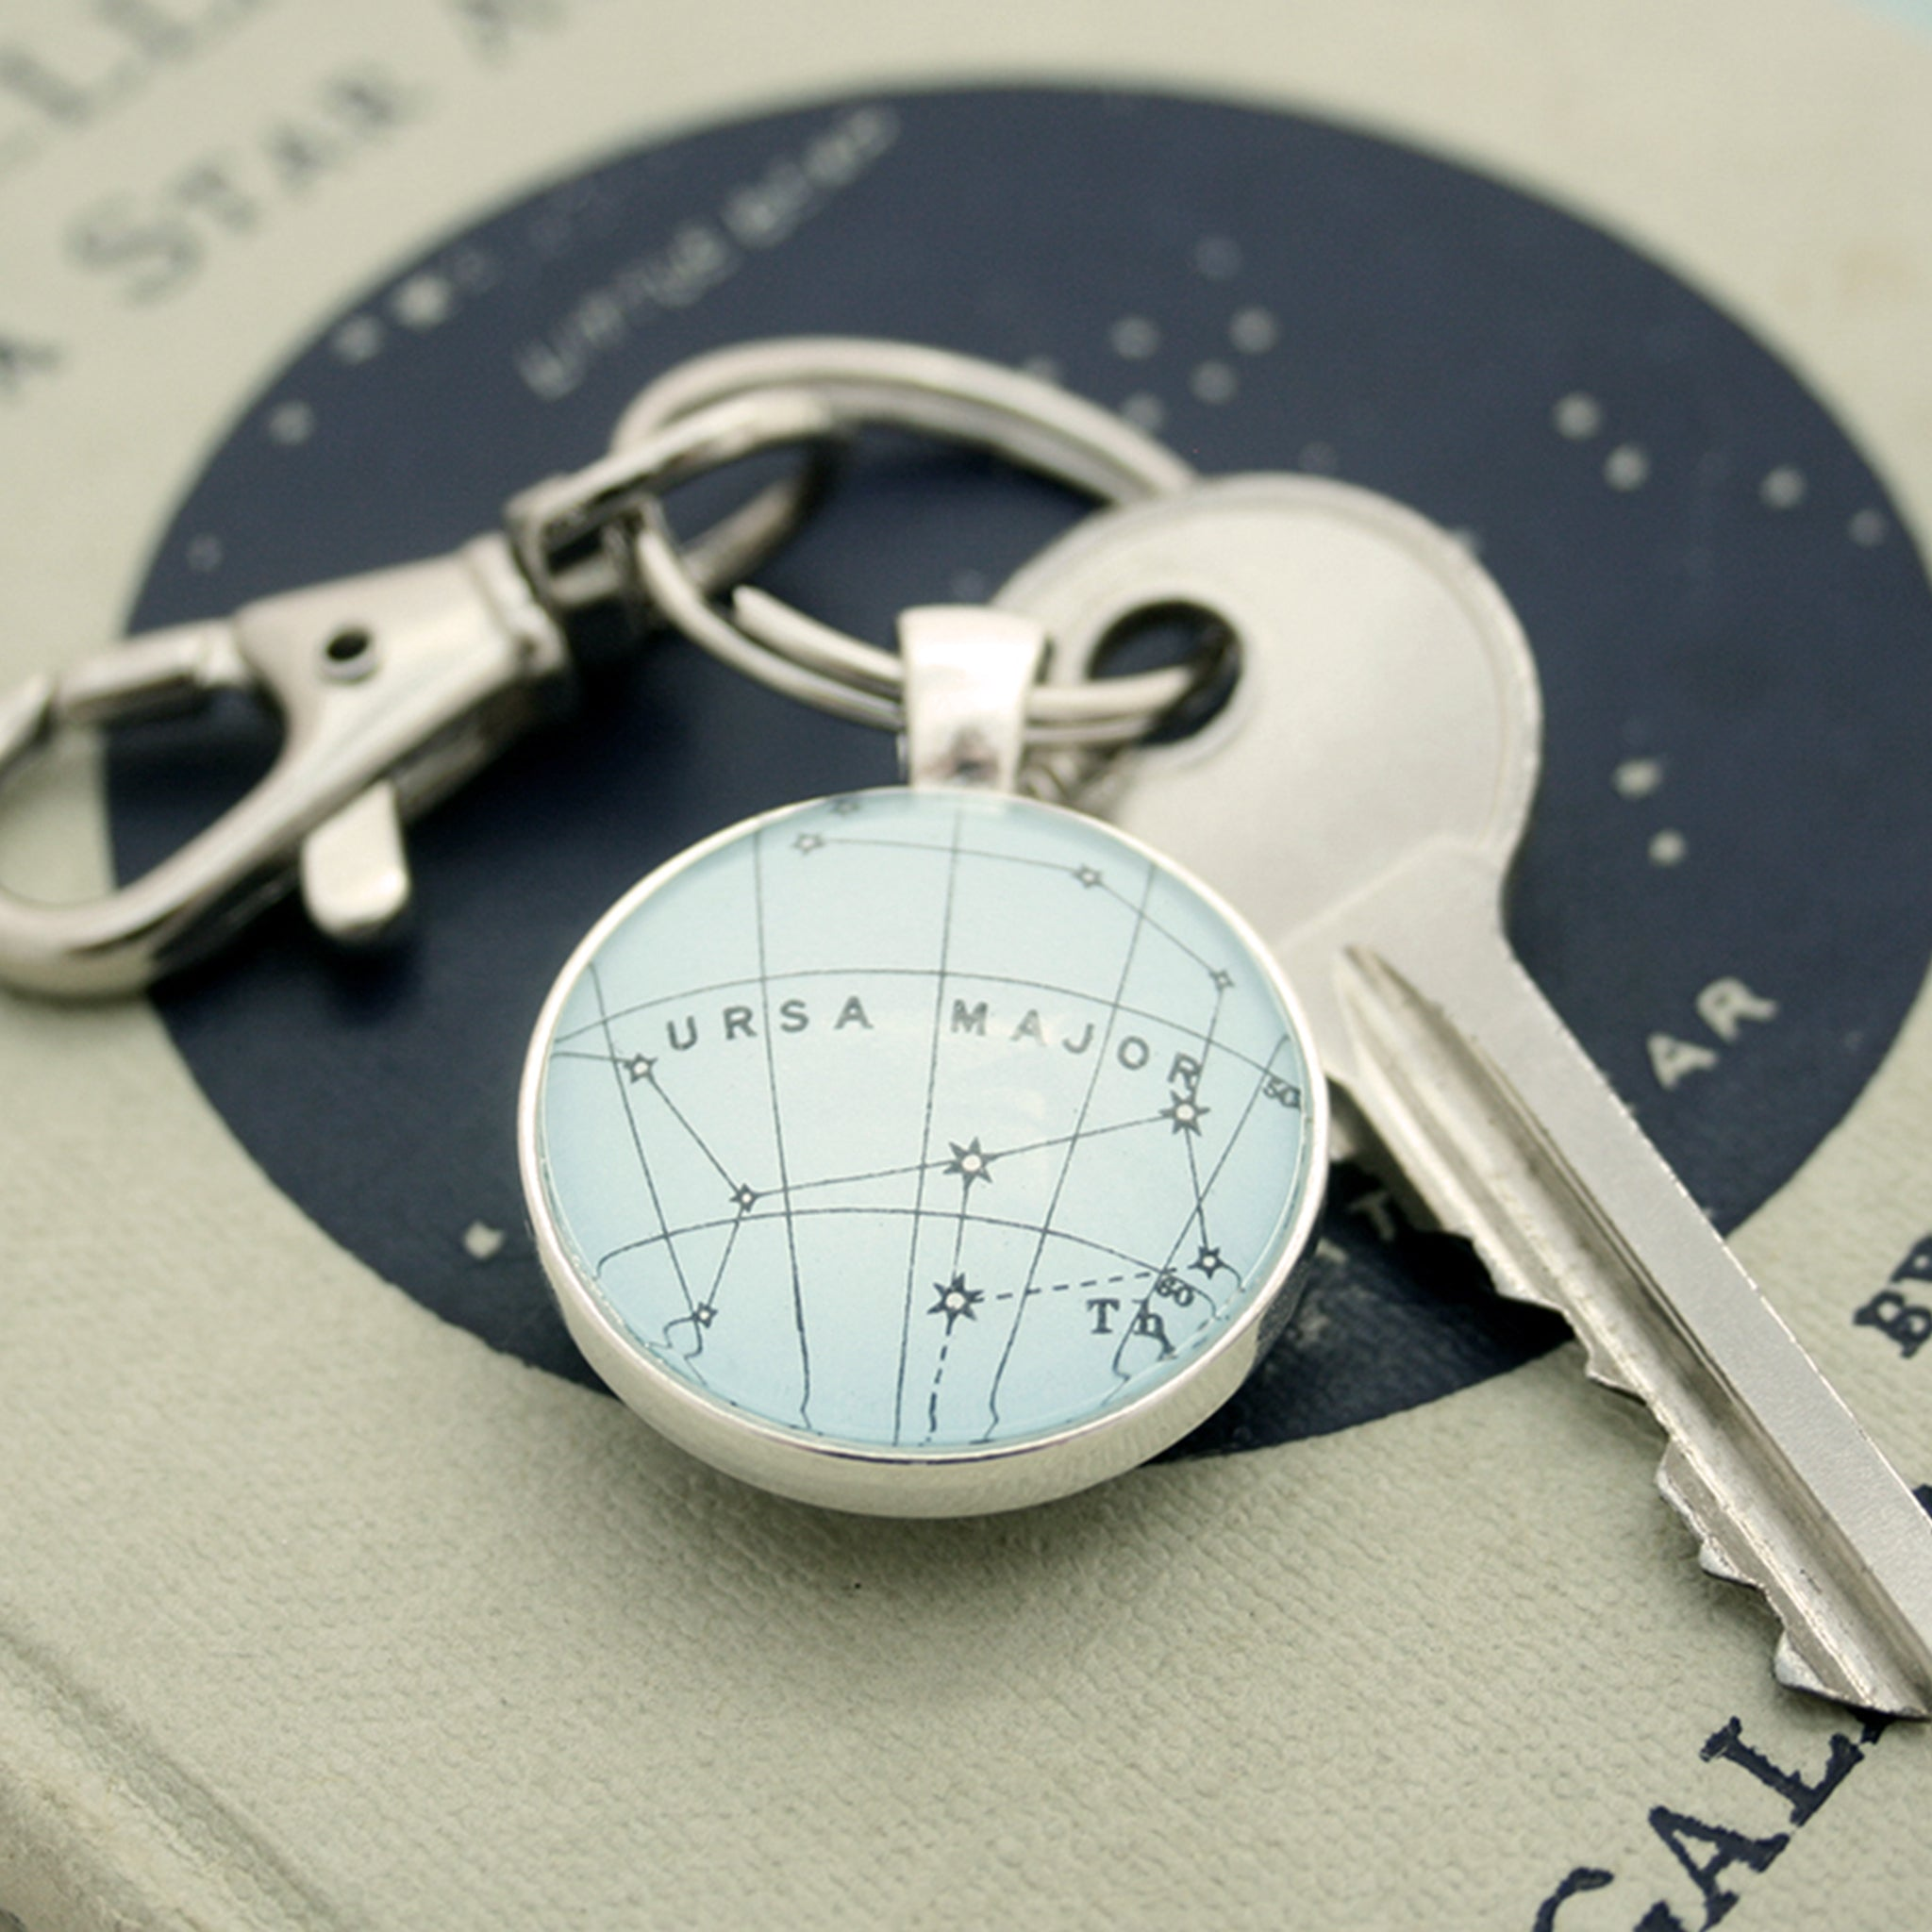 Ursa Major Constellation keychain in silver tone